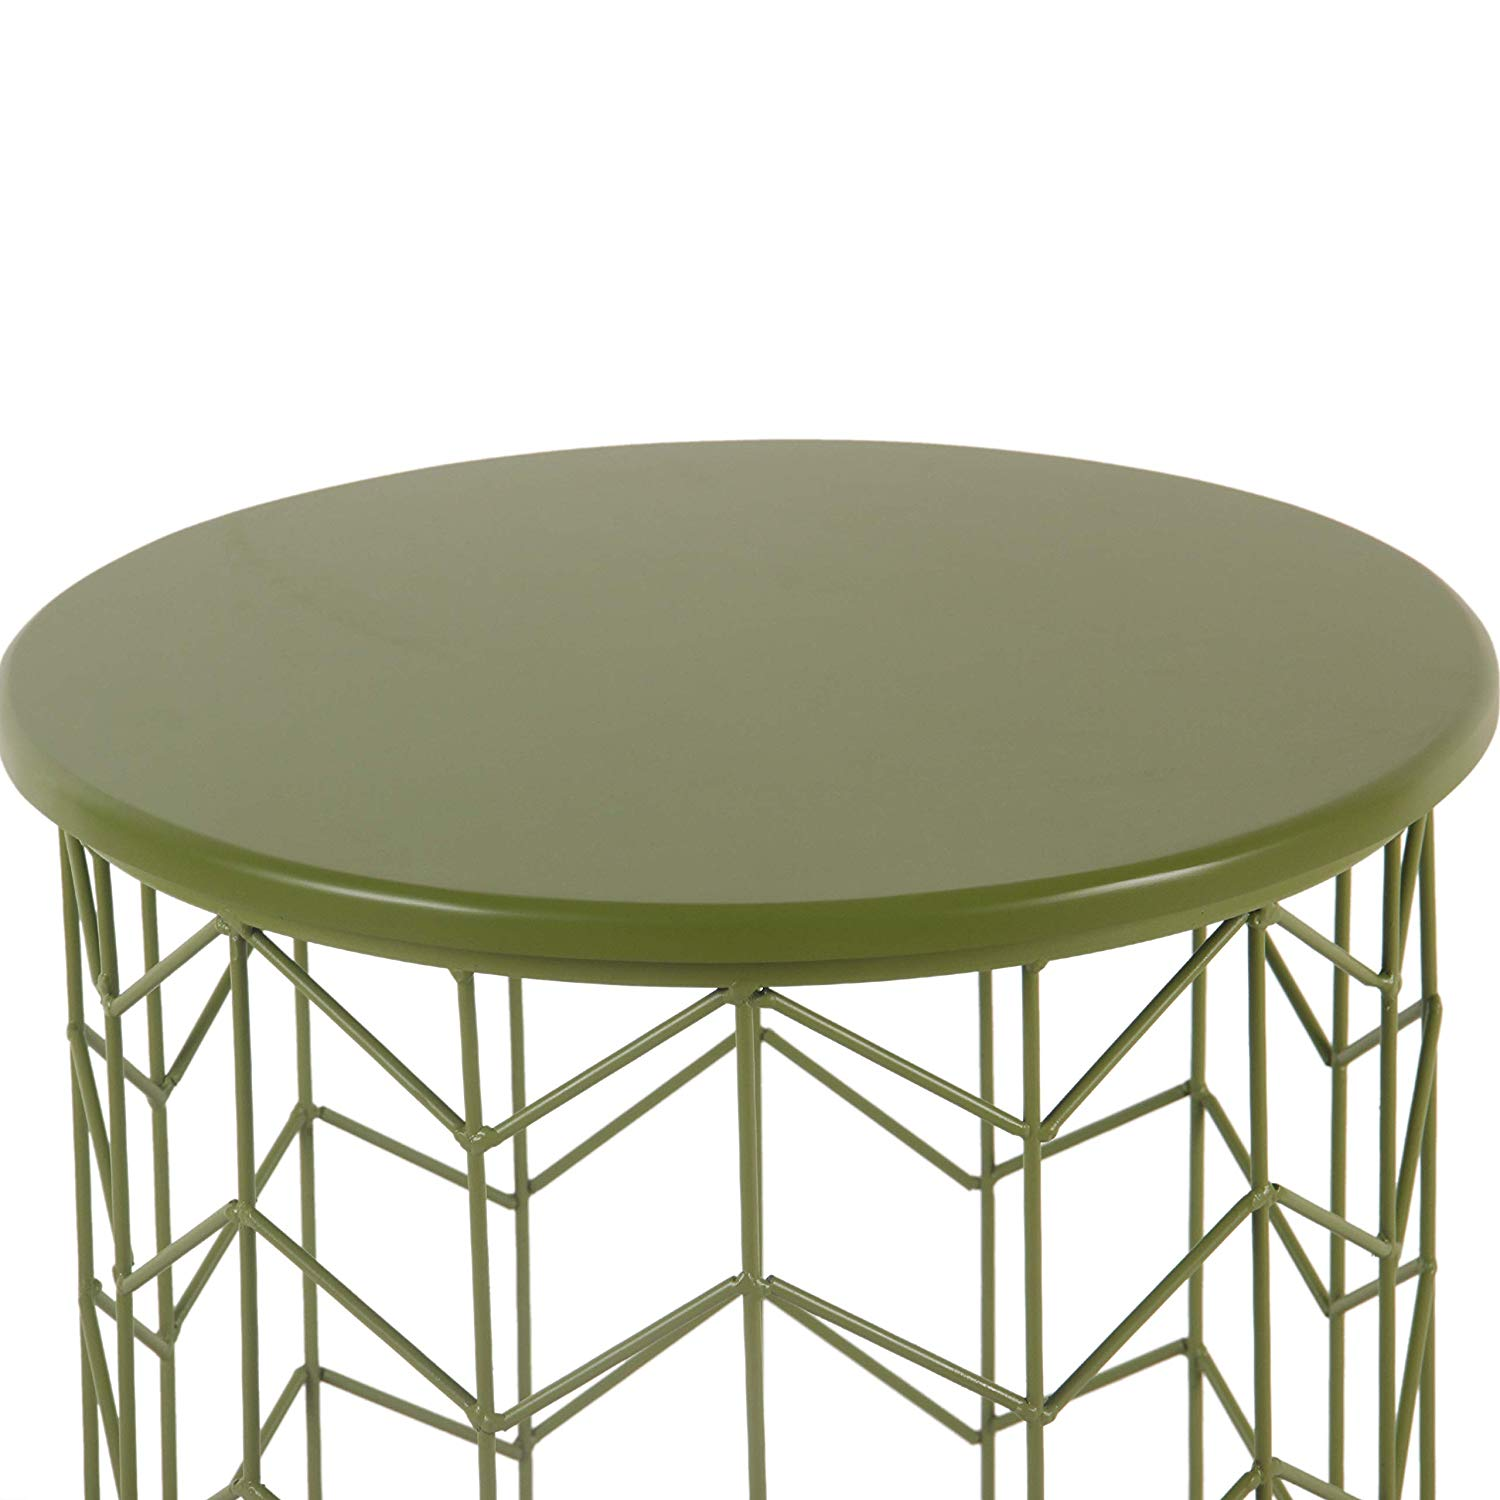 homepop modern green metal accent table kitchen eyelet dining drum kit stool ethan allen buffet extra long stacking coffee tables kids bedside unique small side hammary end marble